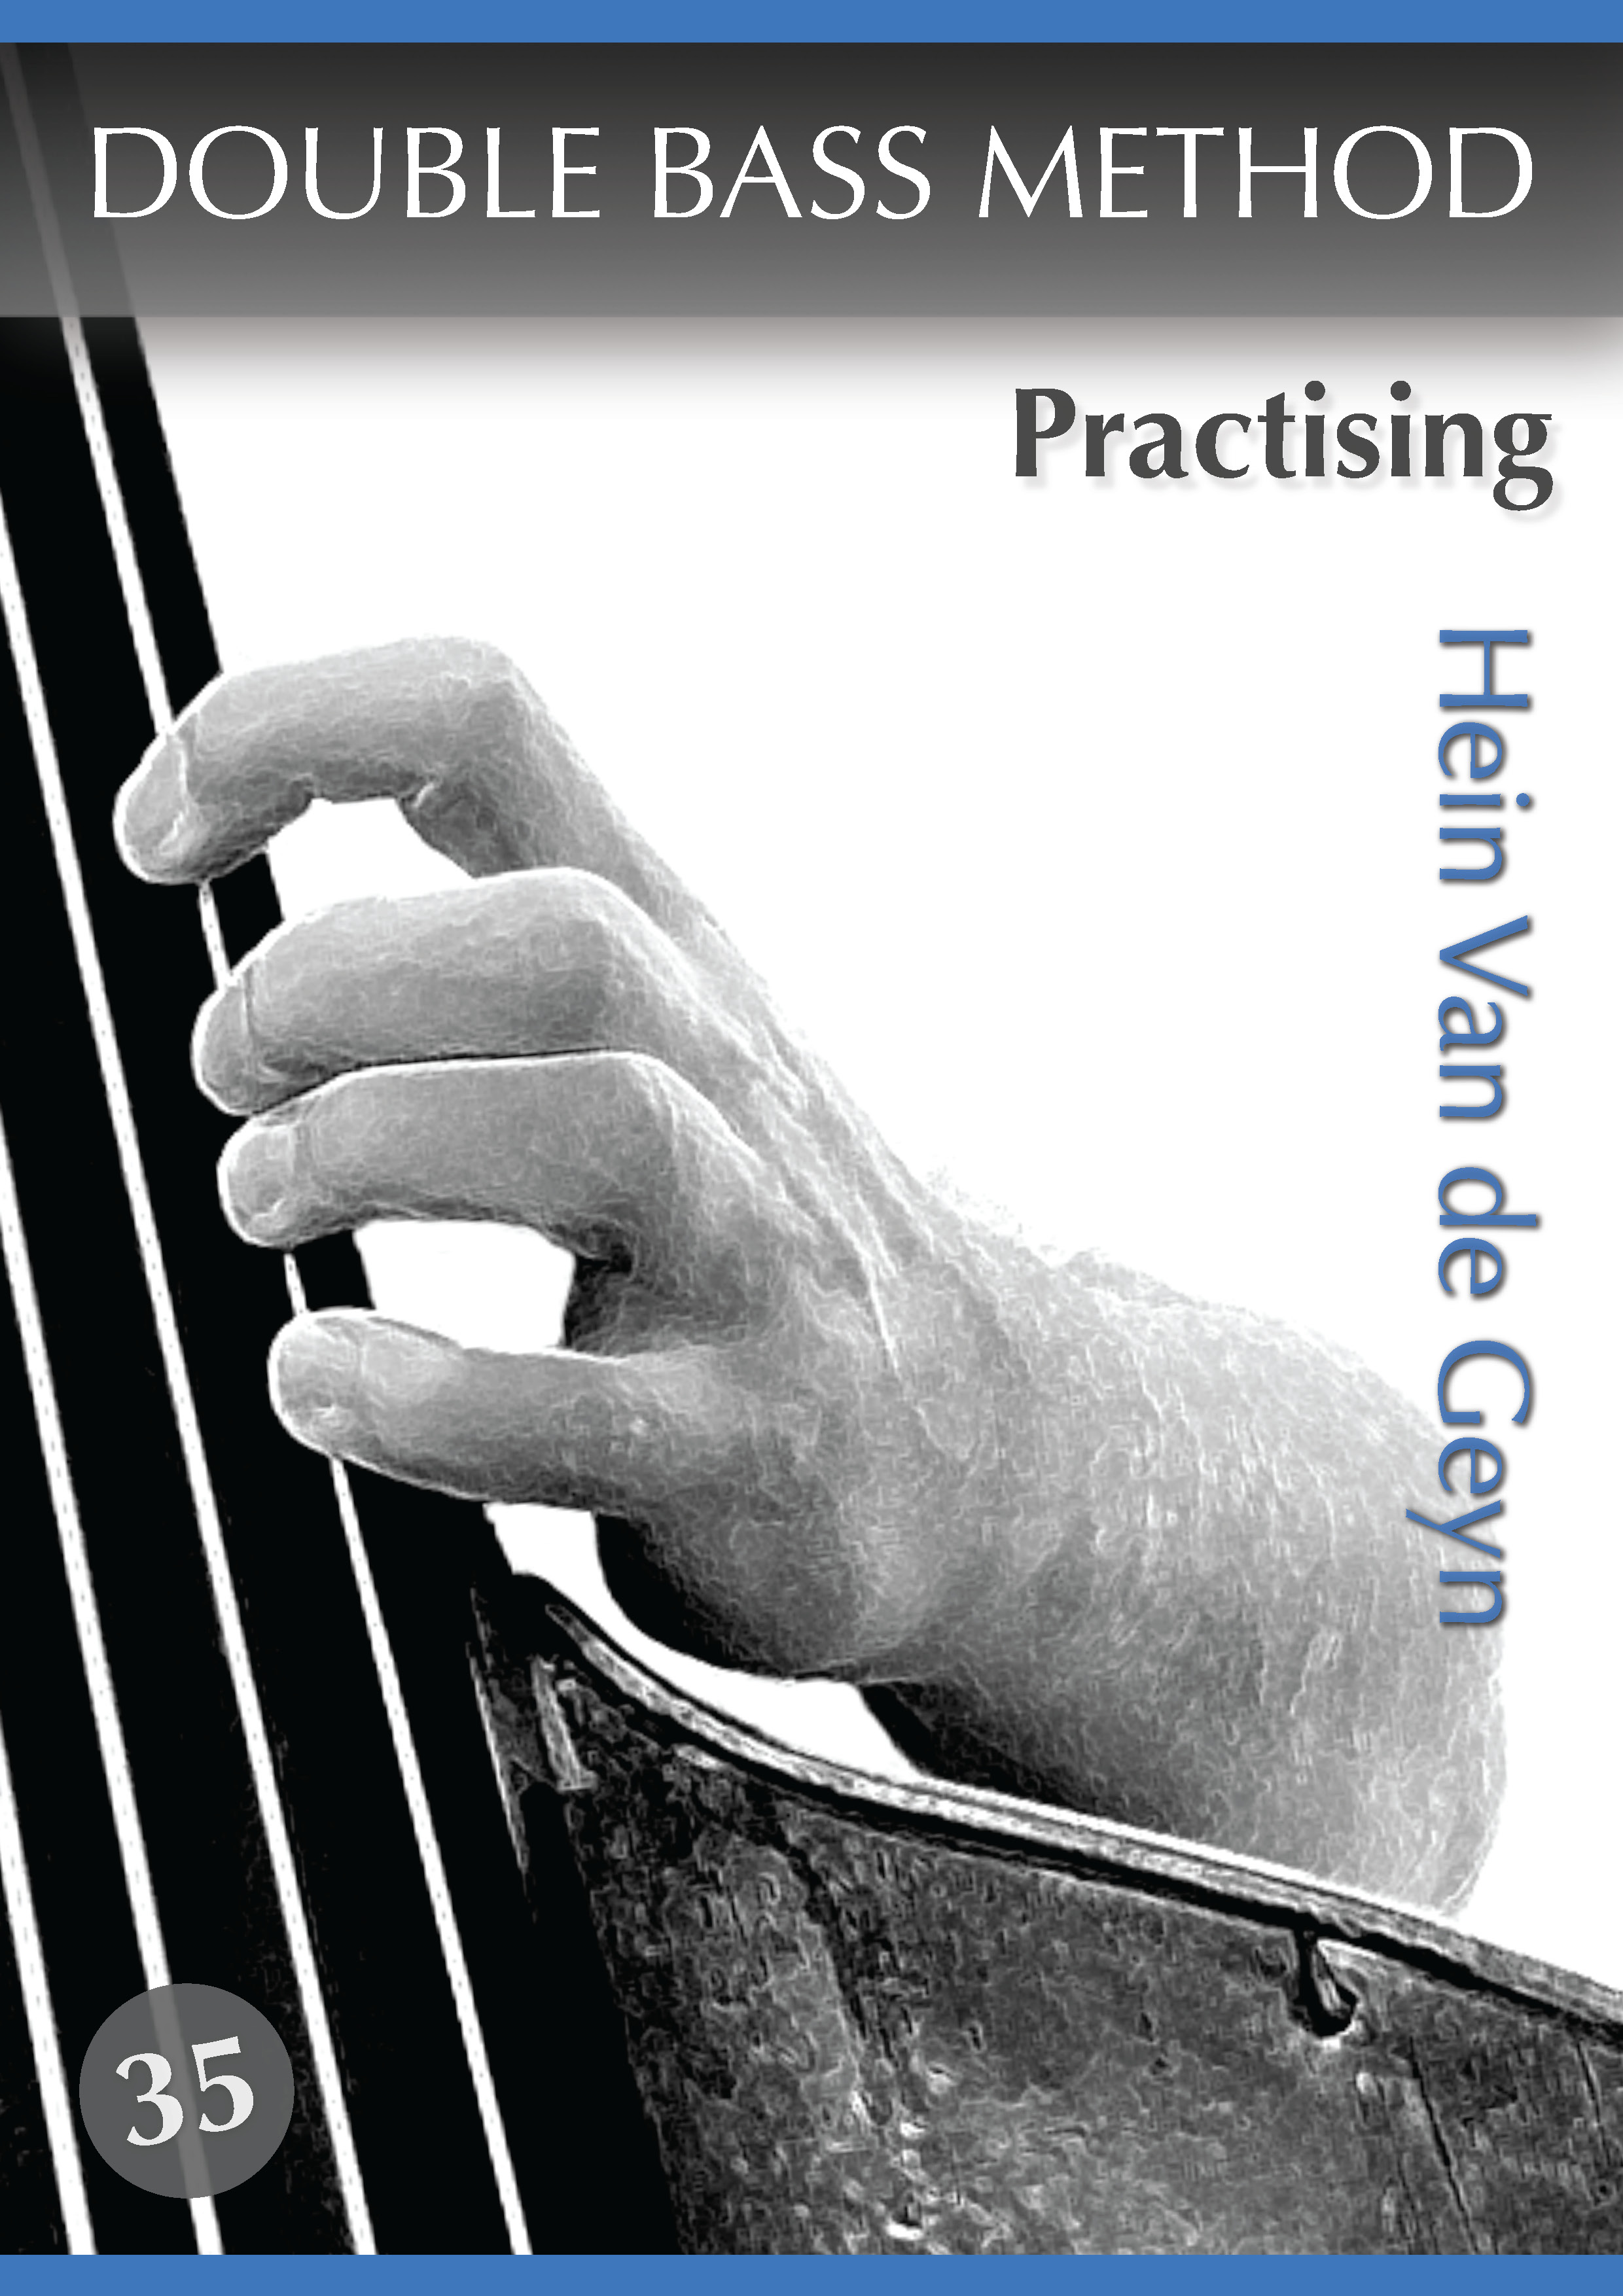 Practising - Hein Van de Geyn - Double Bass Method